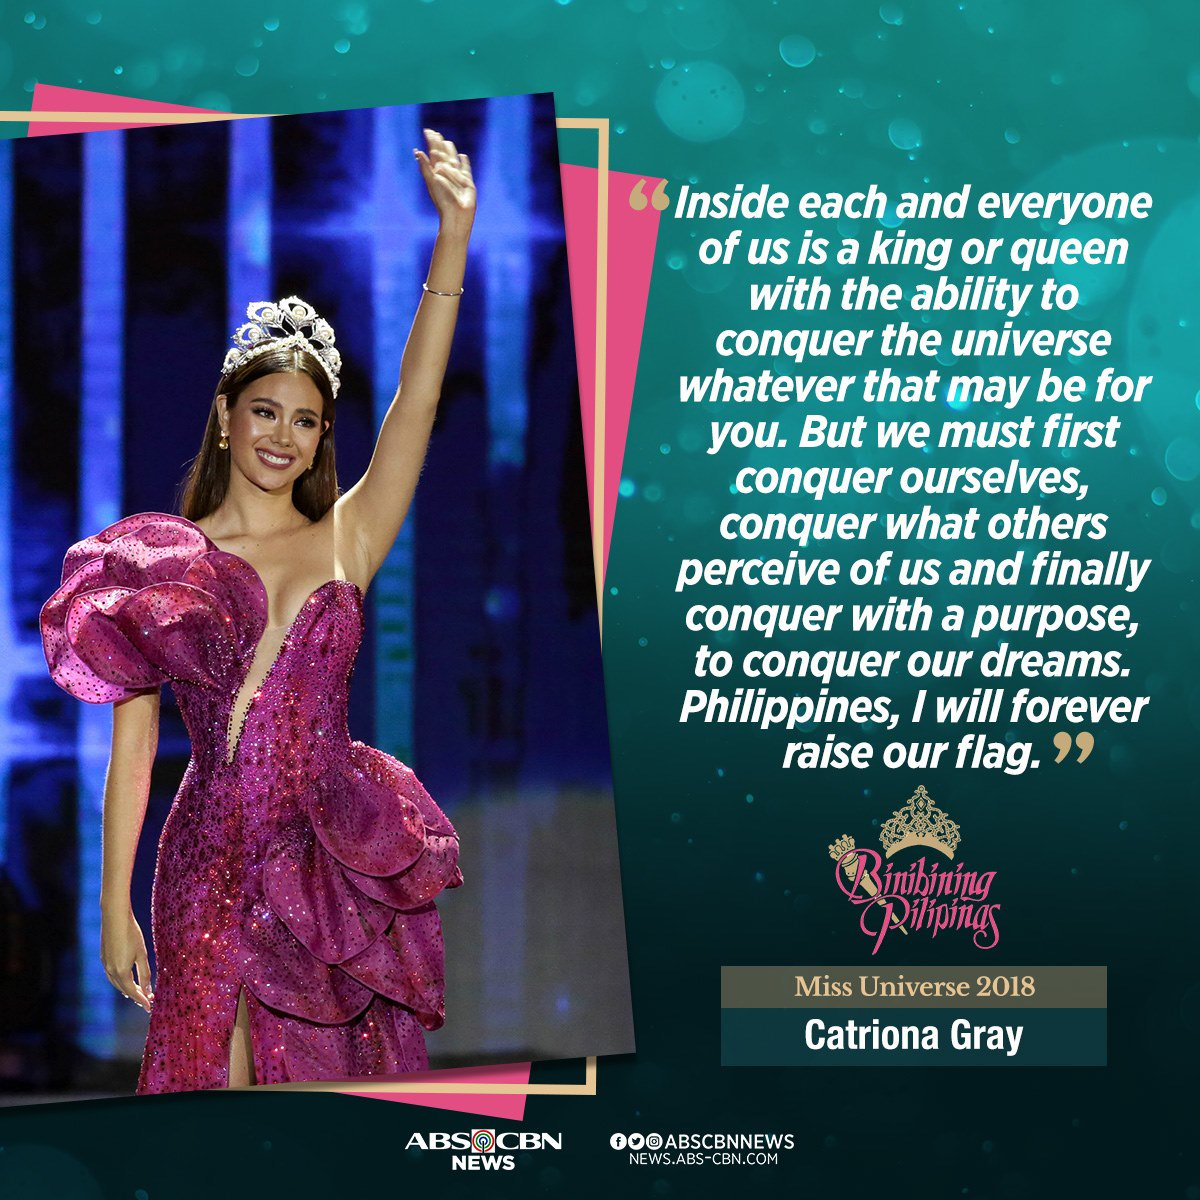 Miss Universe 2018 Catriona Gray's final message was filled with words of gratitude and encouragement for the 104 million Filipinos who supported her in her journey. #BbPilipinas2019<br>http://pic.twitter.com/r3RnKJMUeM